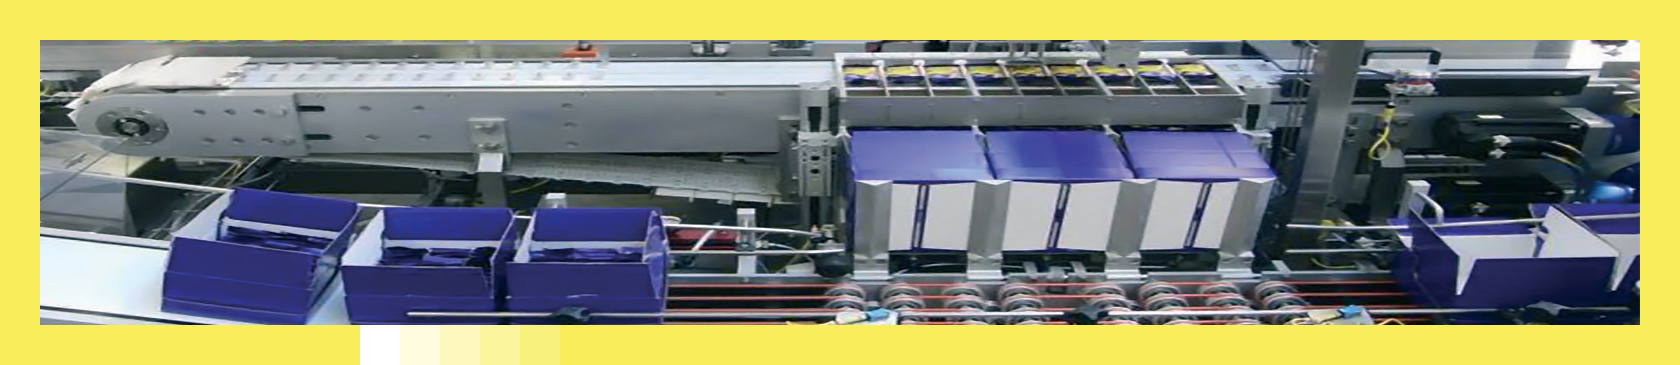 Robotic Case Packer